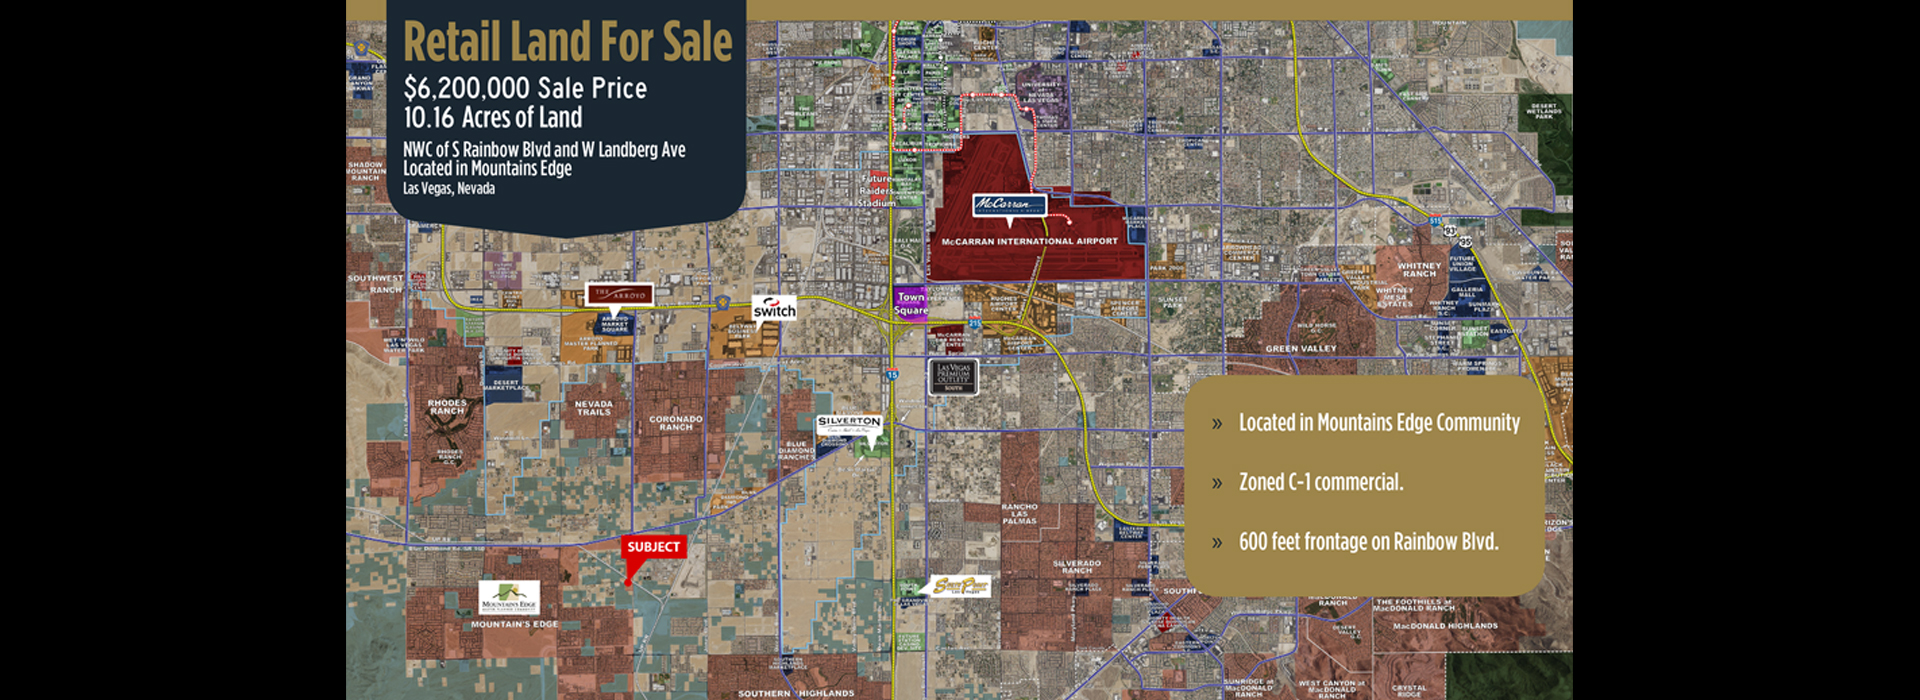 <small>RETAIL LAND FOR SALE 10.16 ACRES OF LAND</small>S. RAINBOW BLVD W. LANDBERG AVE.